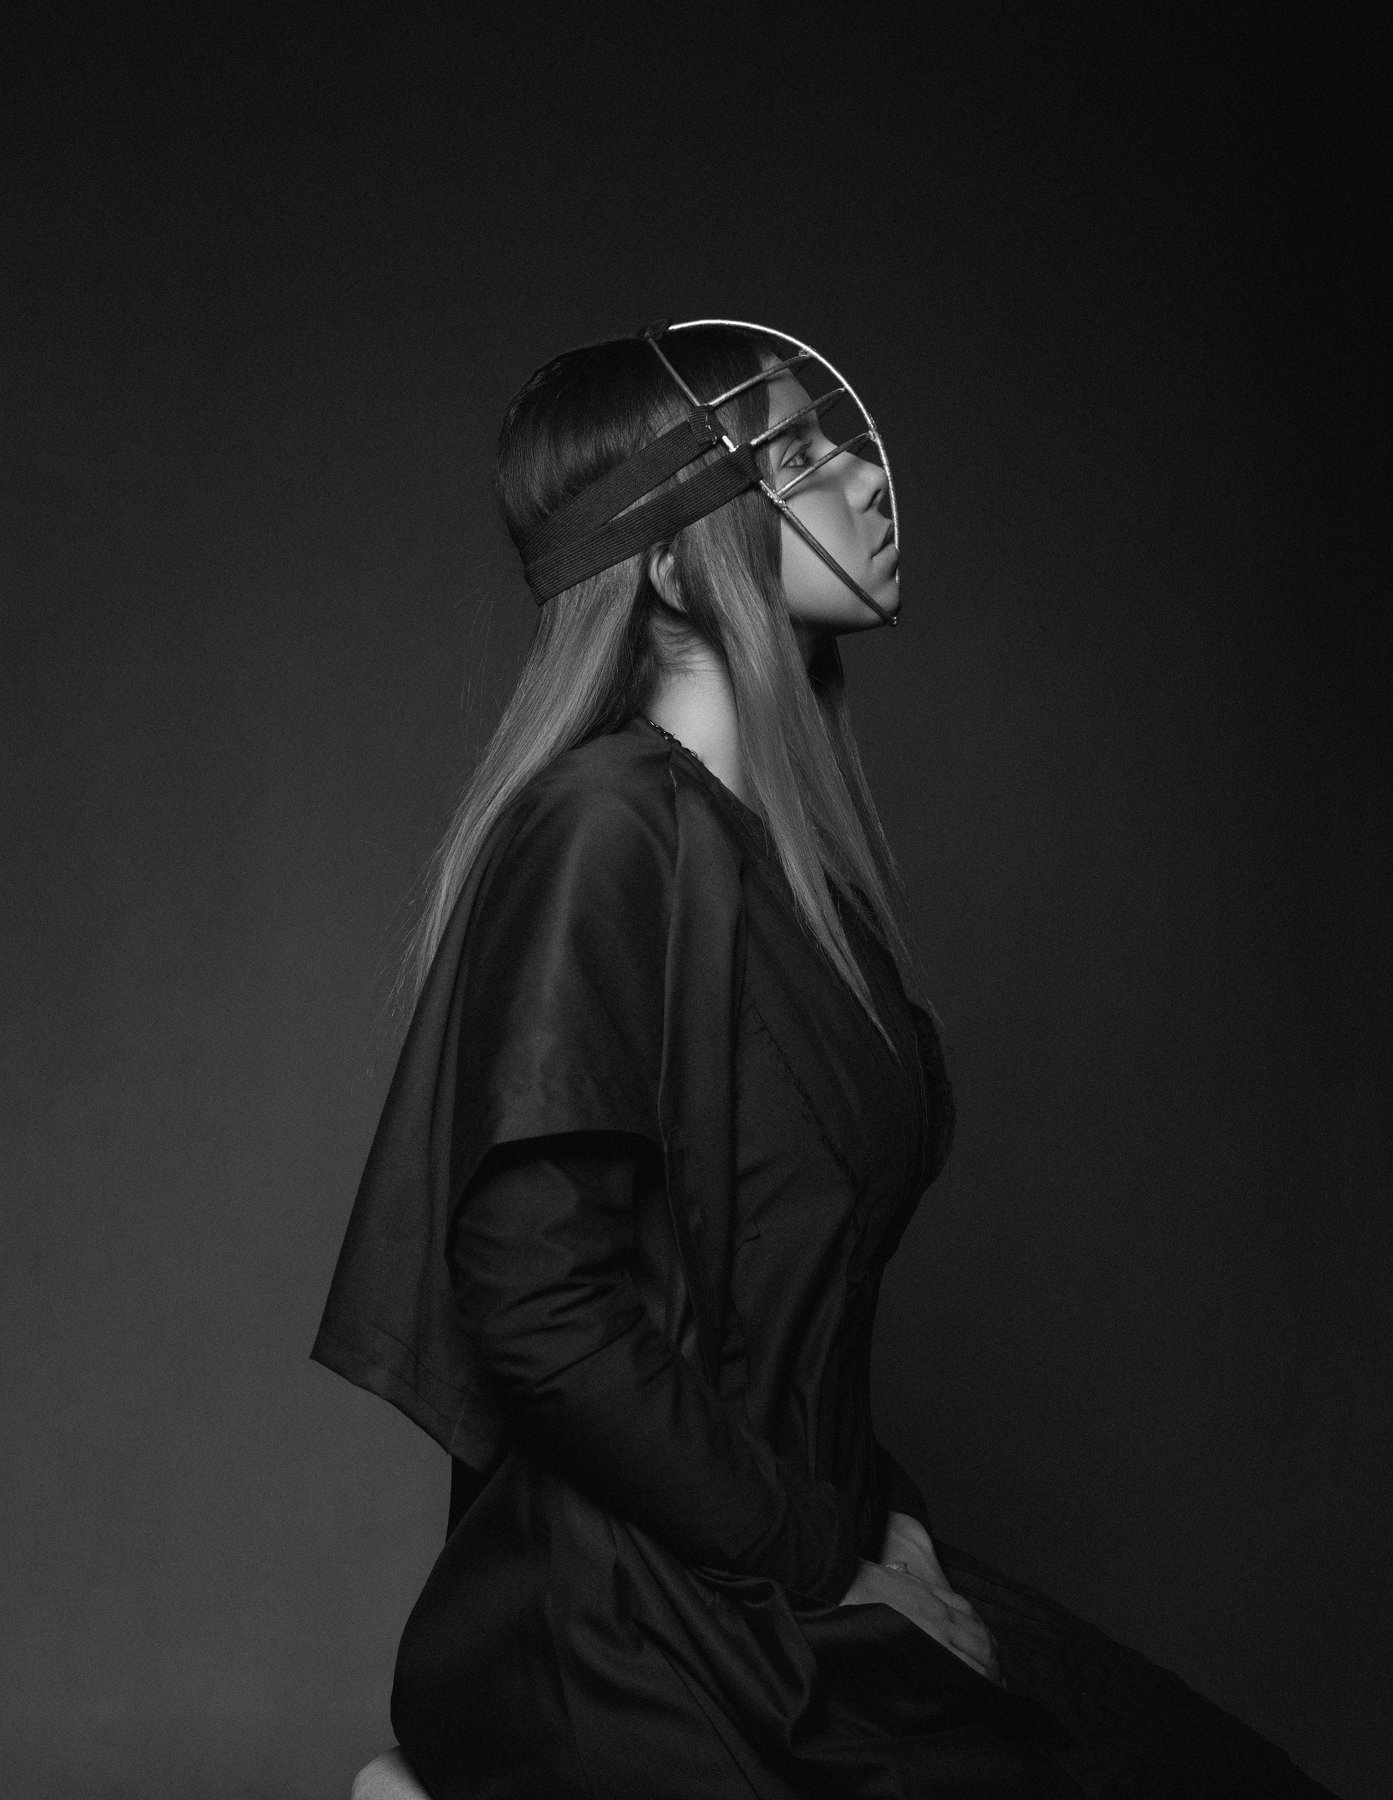 #fashion #women #art  #forced #35photo #mask #artistic #design #art, hamze dashtrazmi